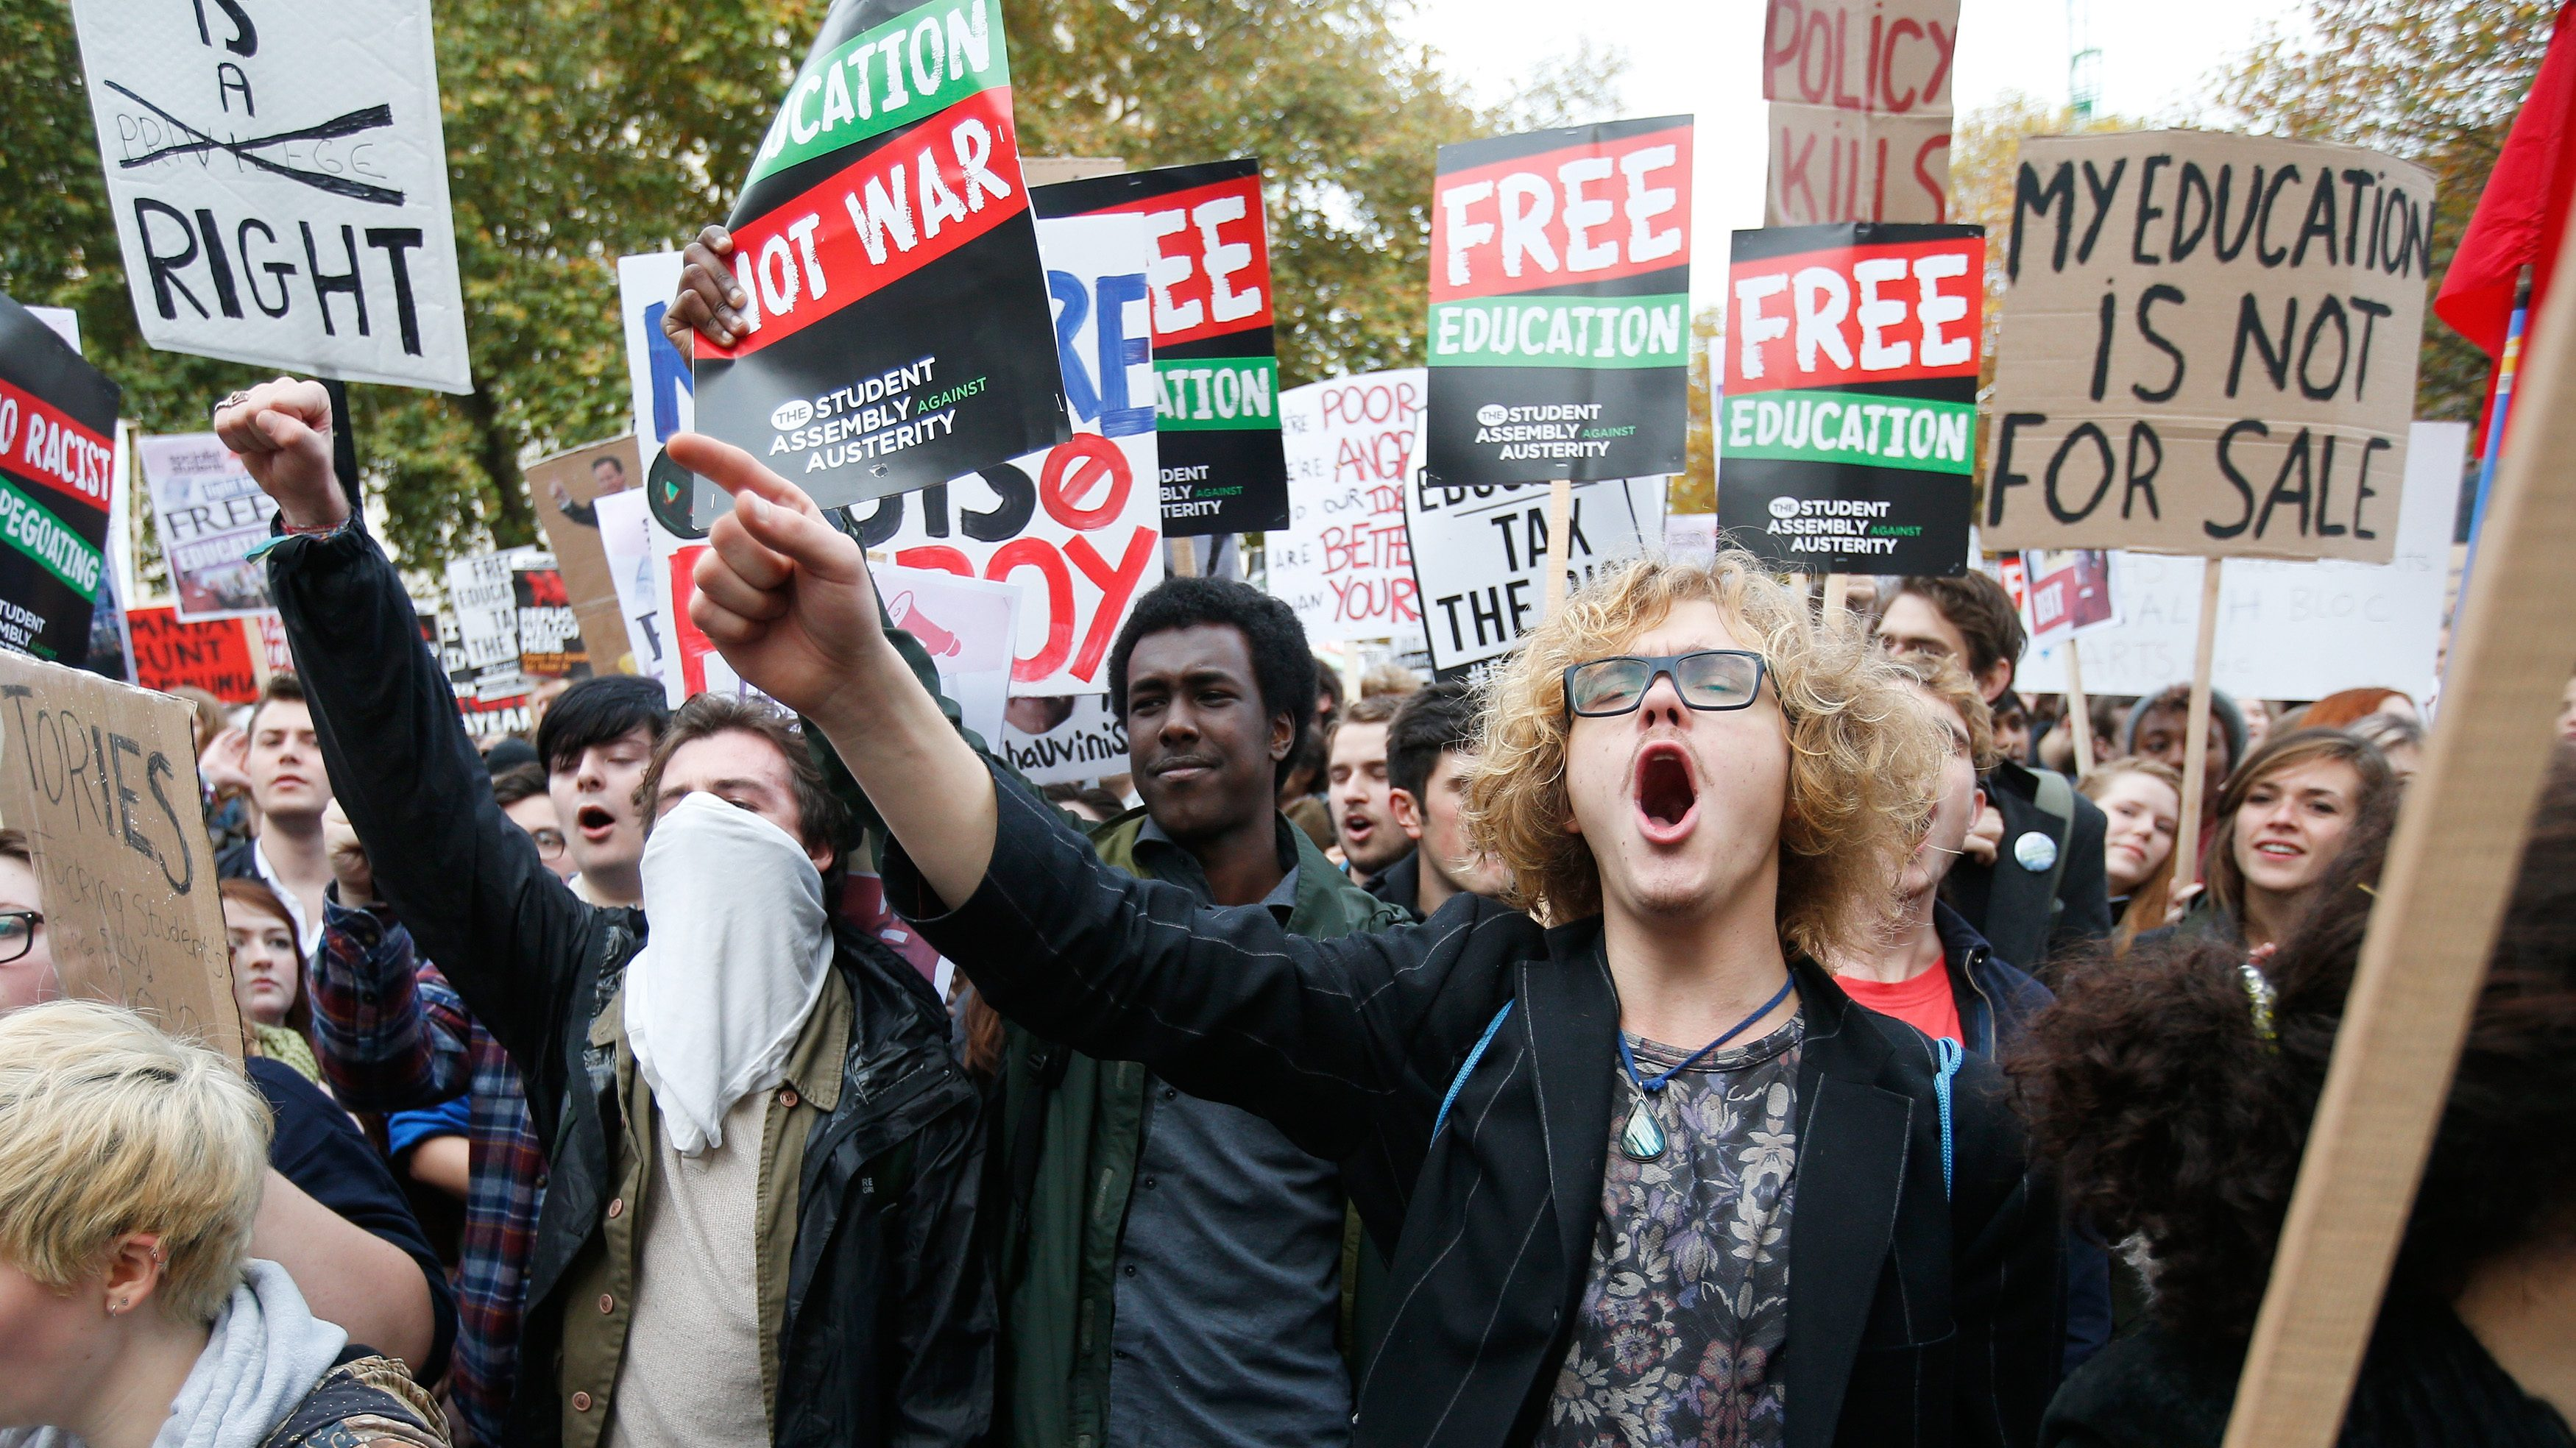 Students shout slogans and hold banners during a demonstration to protest against cuts to grants, in London